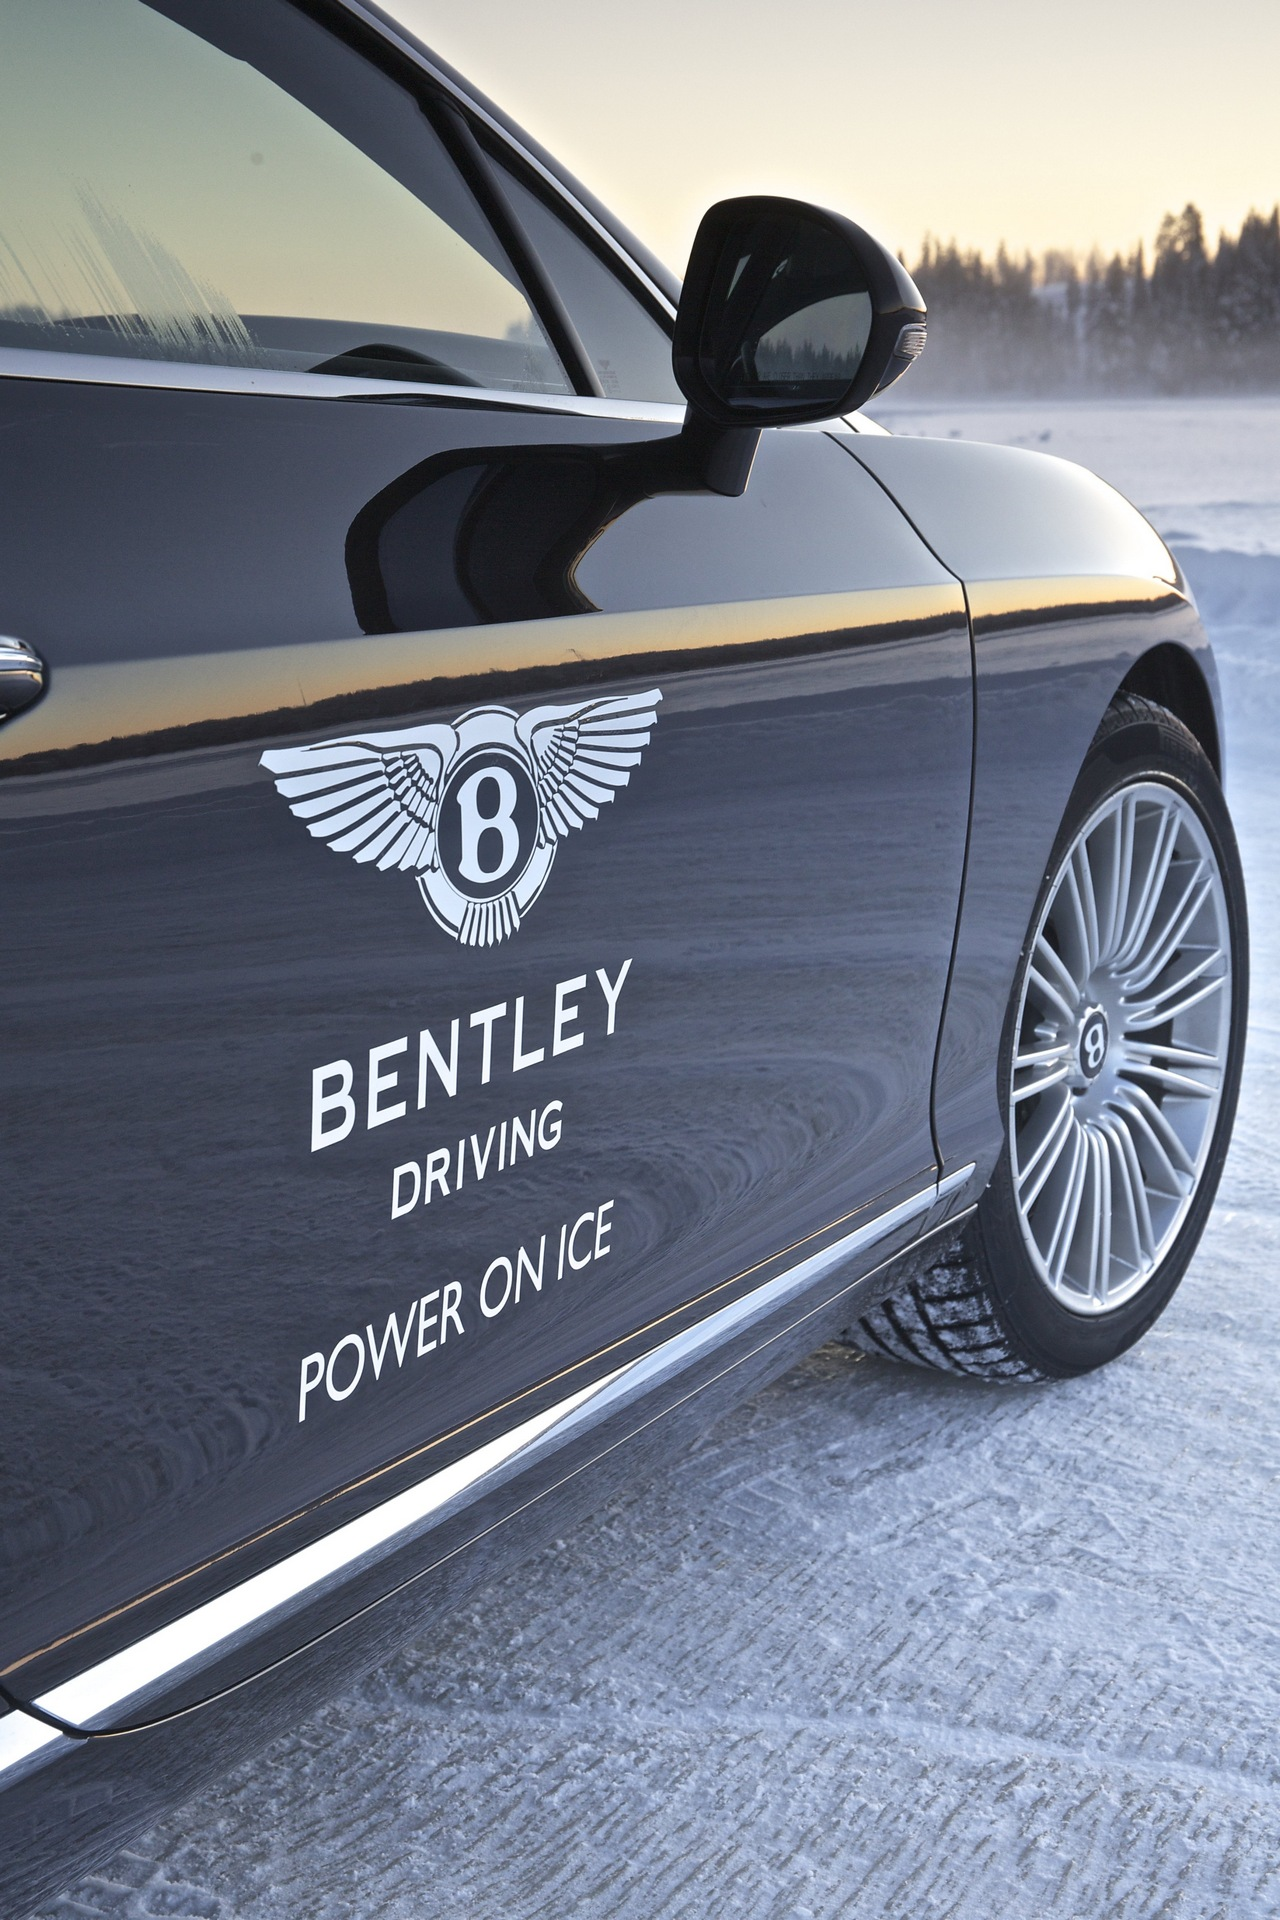 bentley-power-on-ice-2014_0_1005